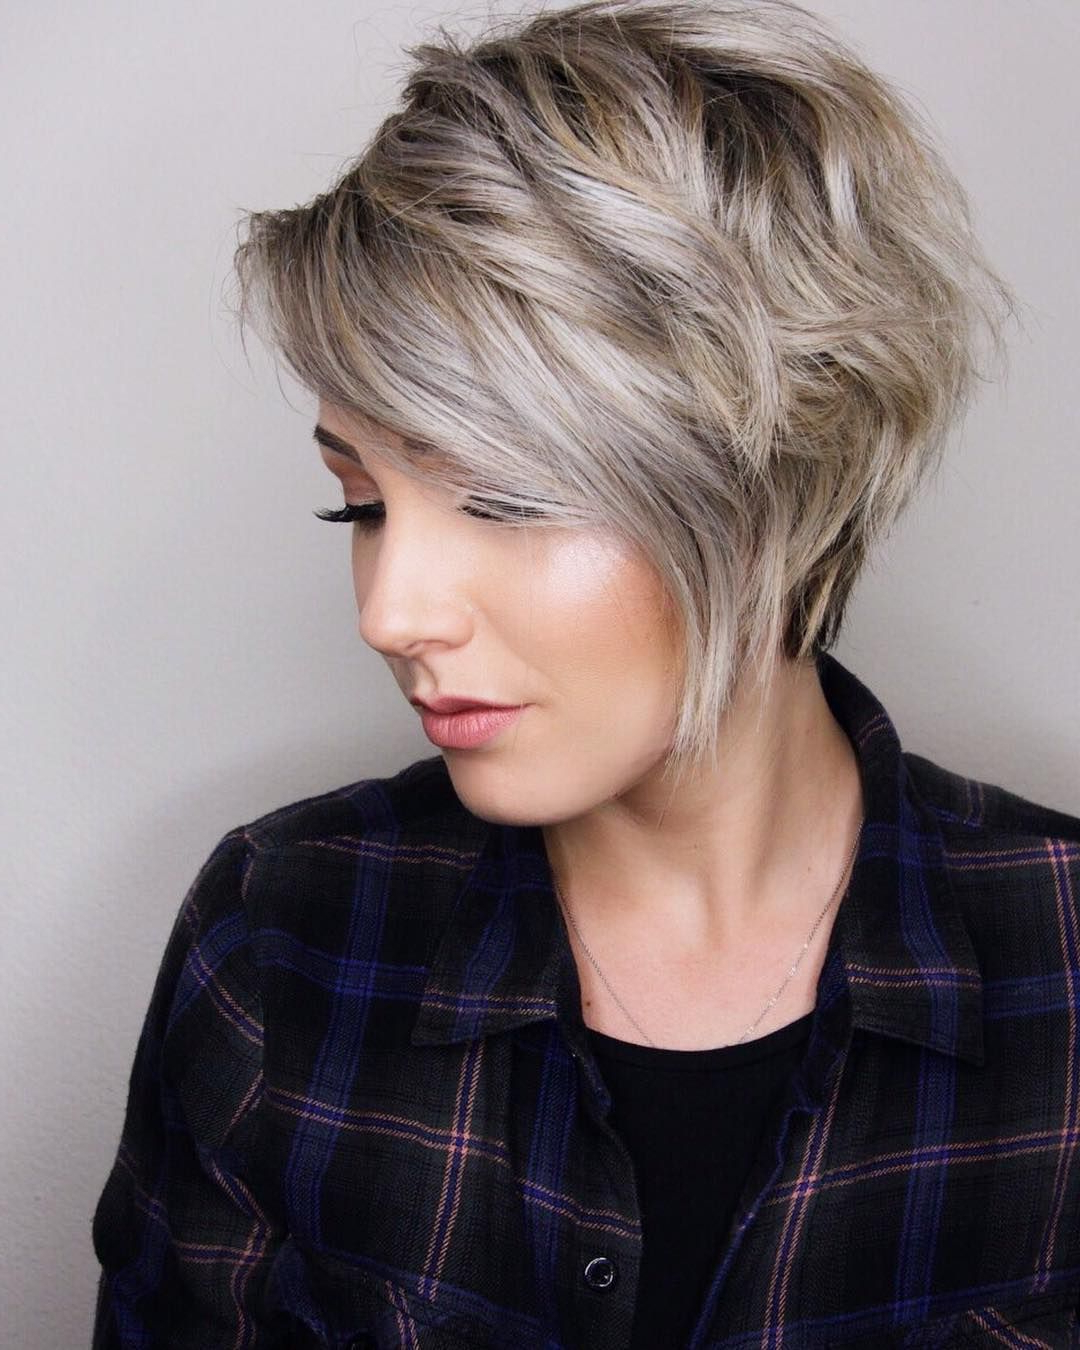 10 Trendy Layered Short Haircut Ideas For 2017  2018 – 'extra With Short Hairstyles For Very Thick Hair (View 3 of 25)